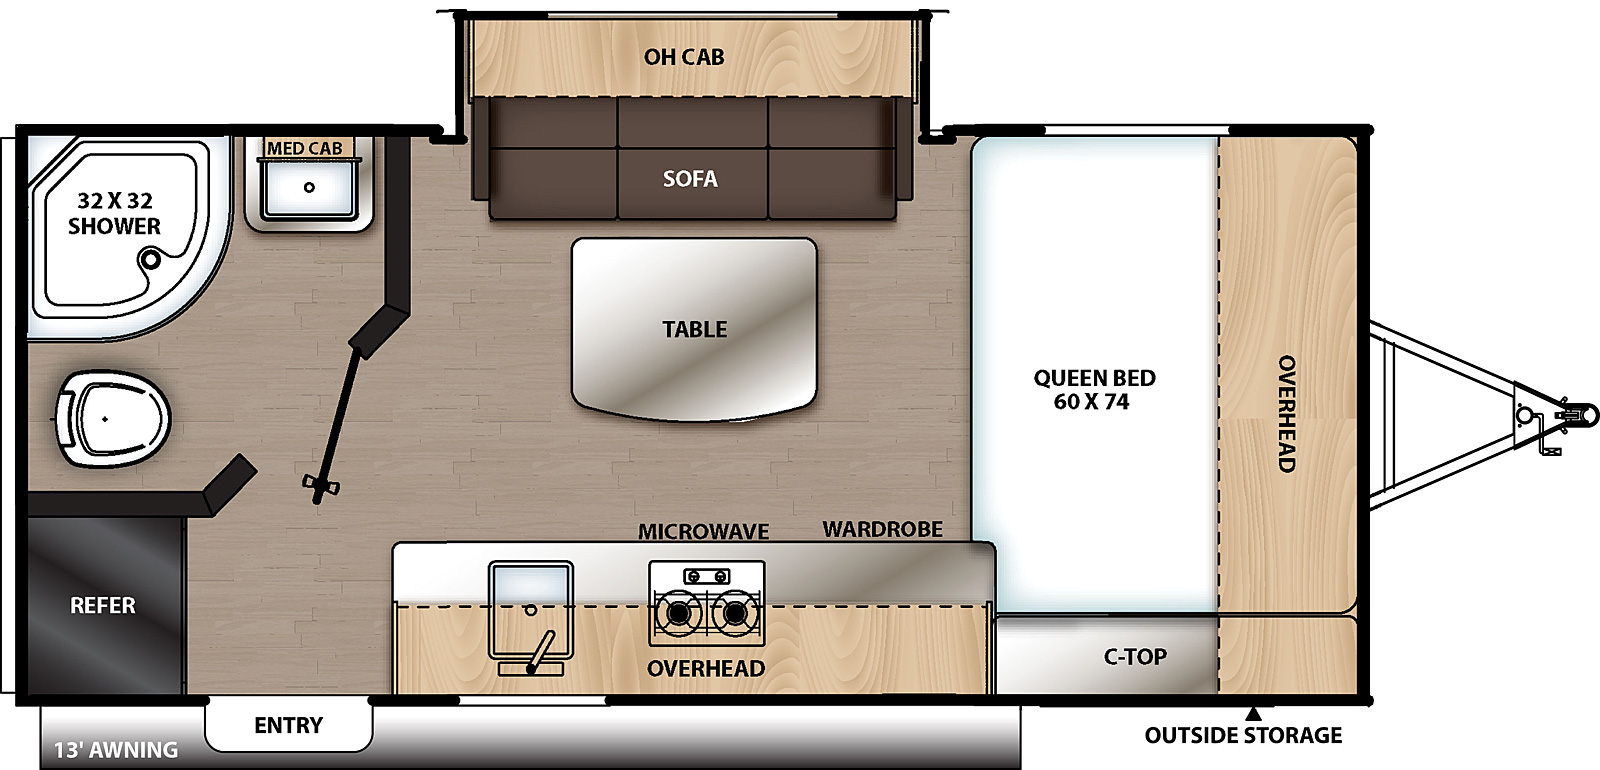 Floorplan for Catalina Summit Series 7 Travel Trailer model 174FQS